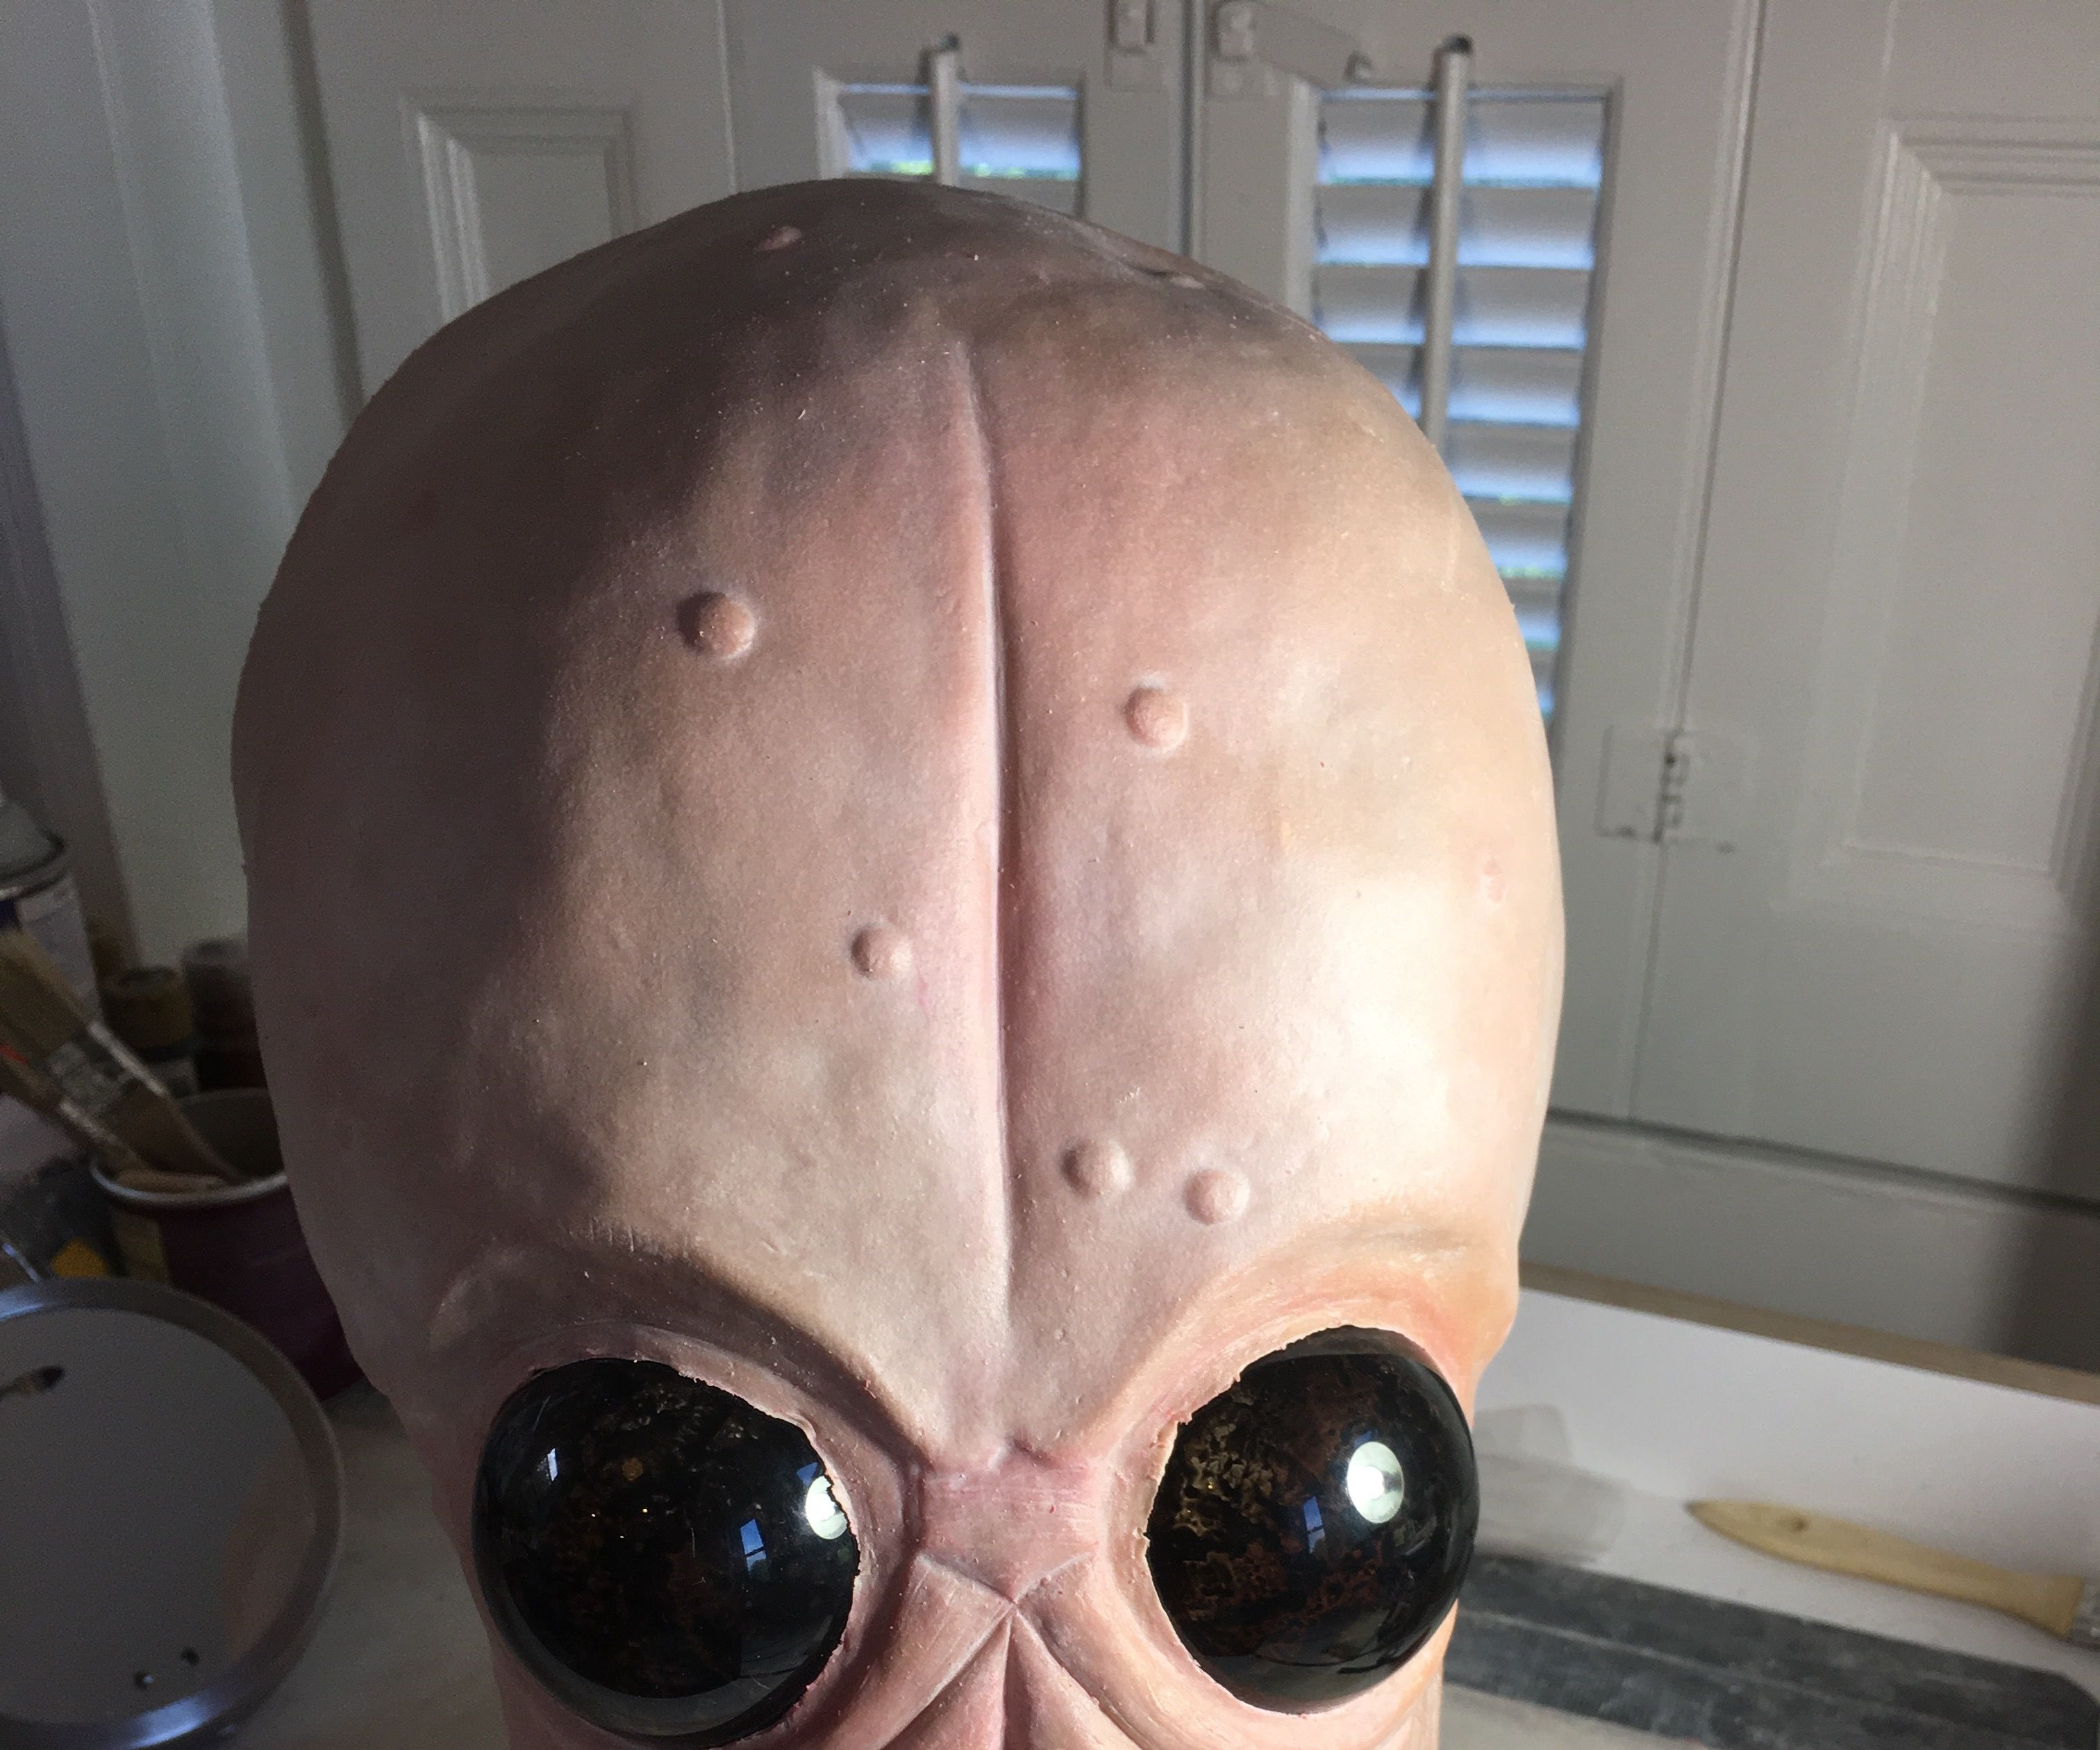 Making an Awesome Bith/Cantina Band Mask